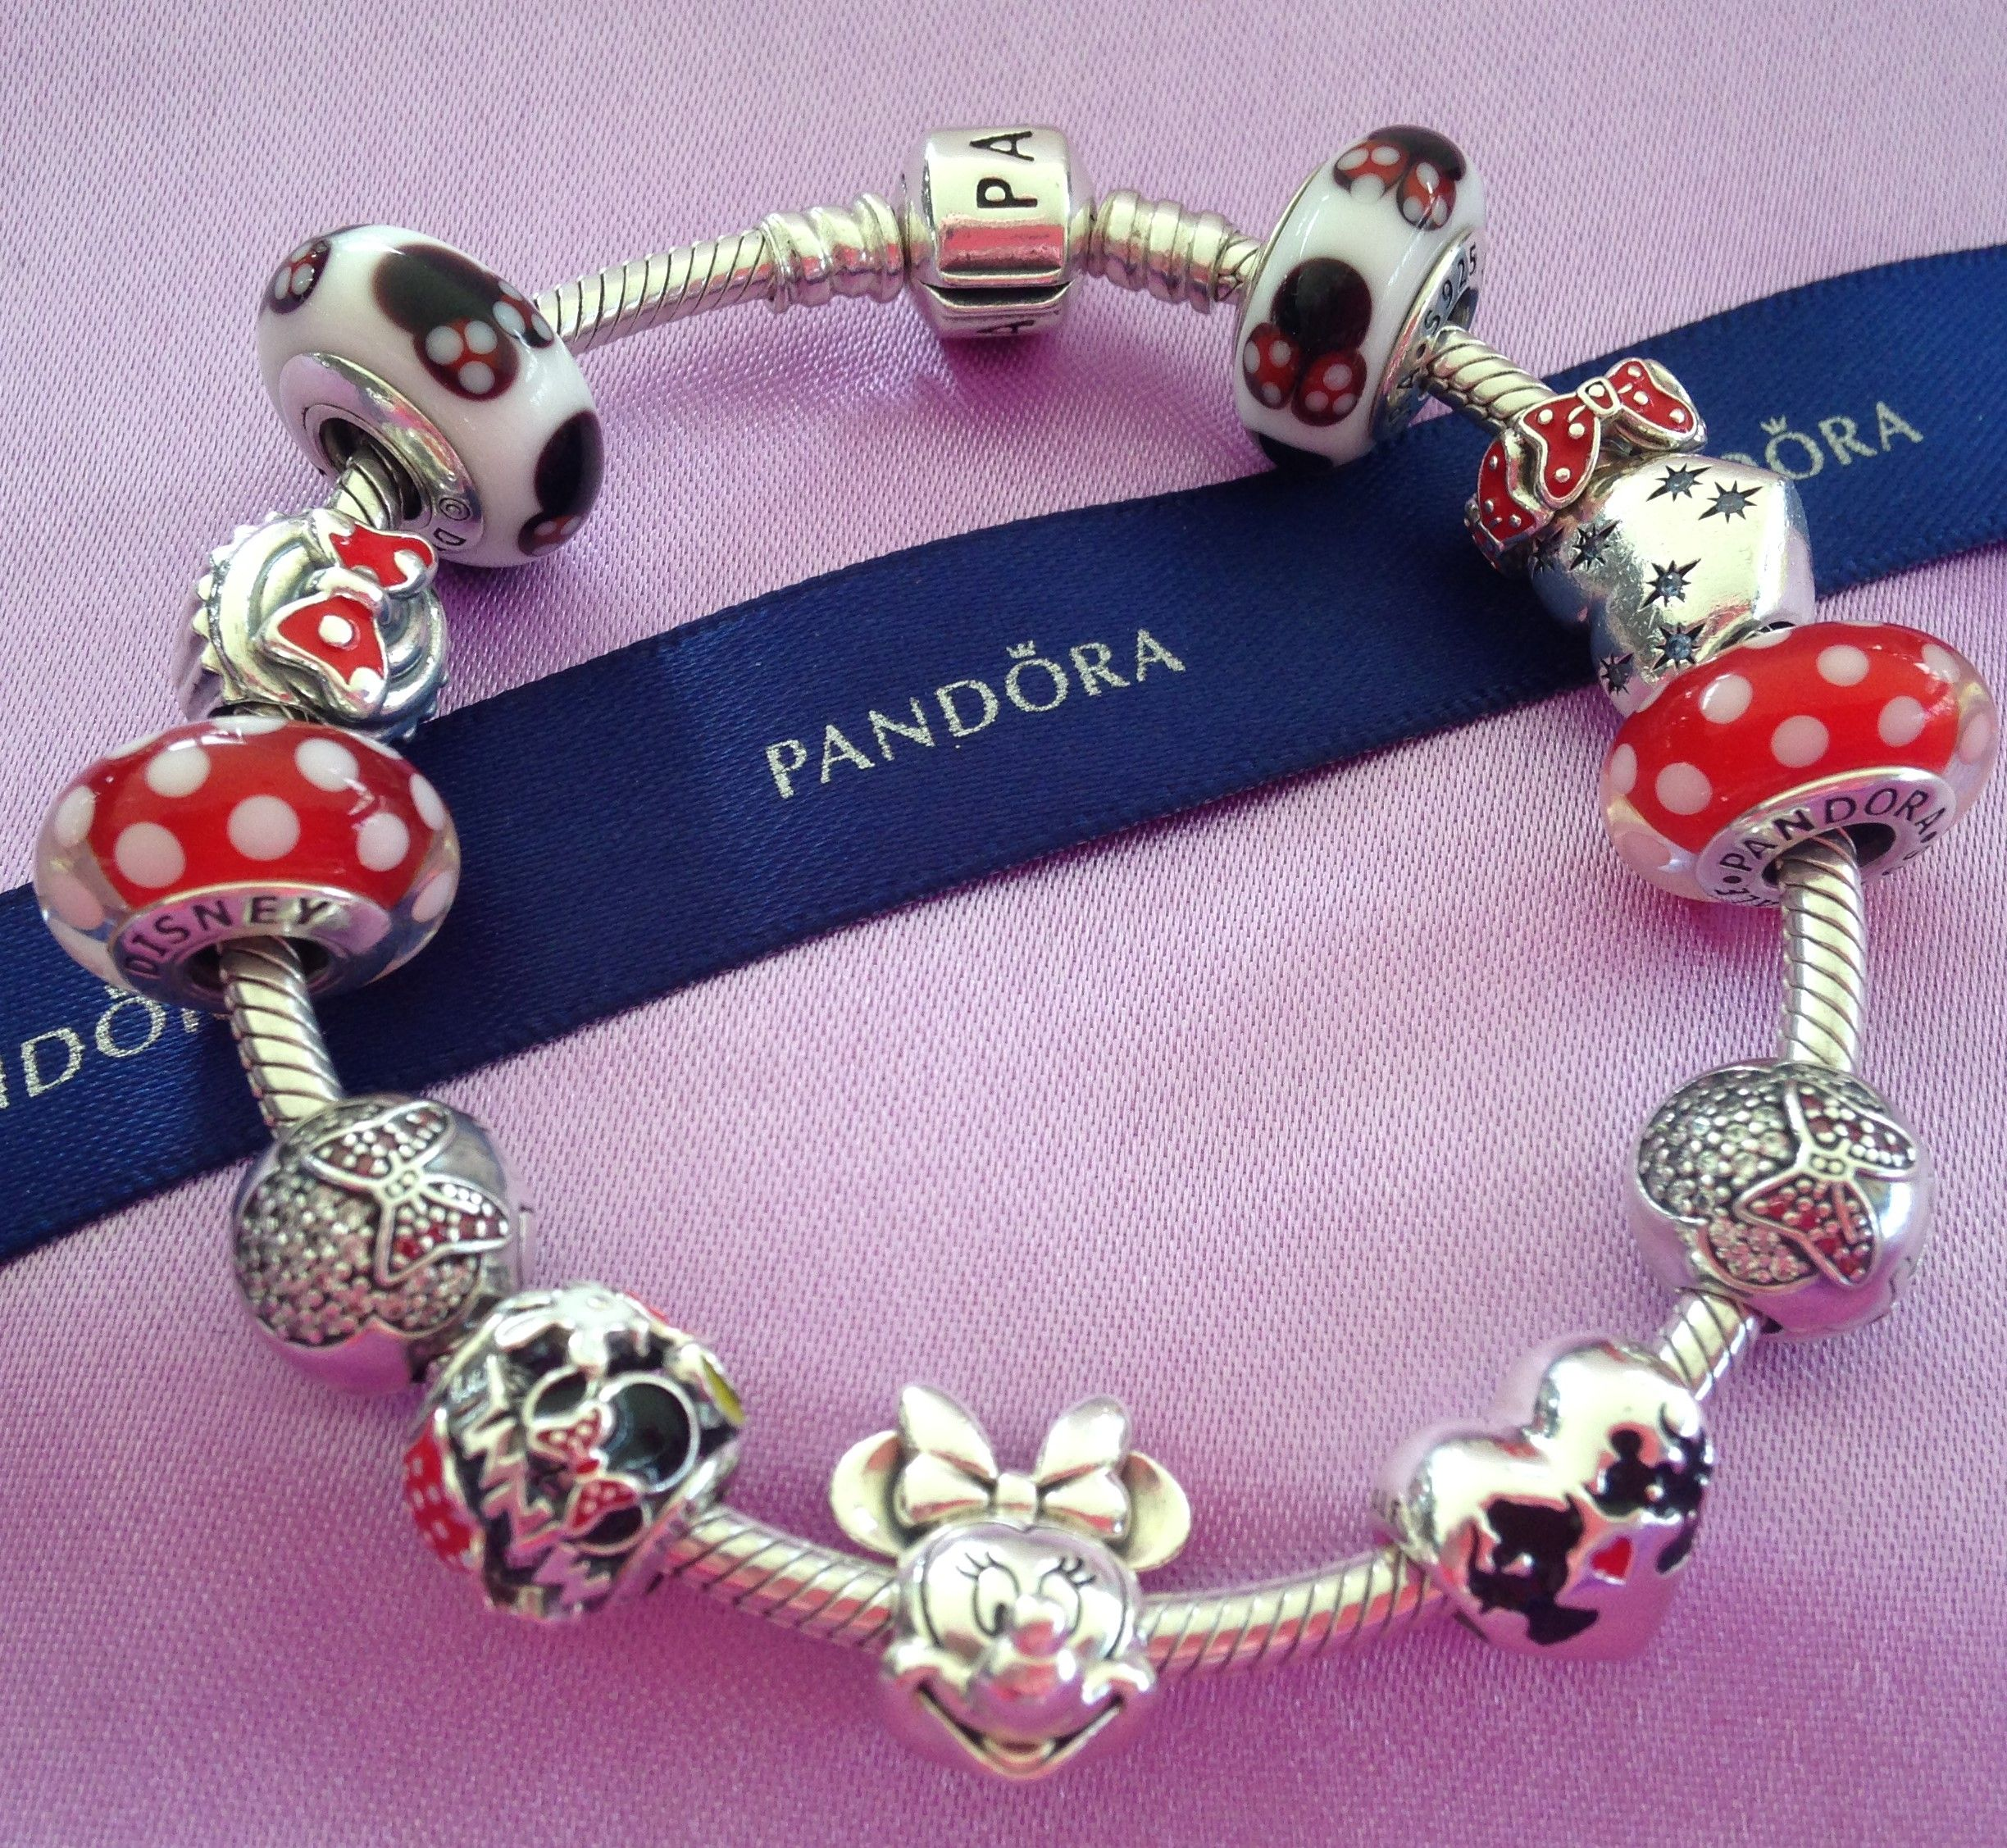 68dd2278b Pandora Disney Minnie Mouse Bracelet 2015 | My Pandora Box in 2019 ...